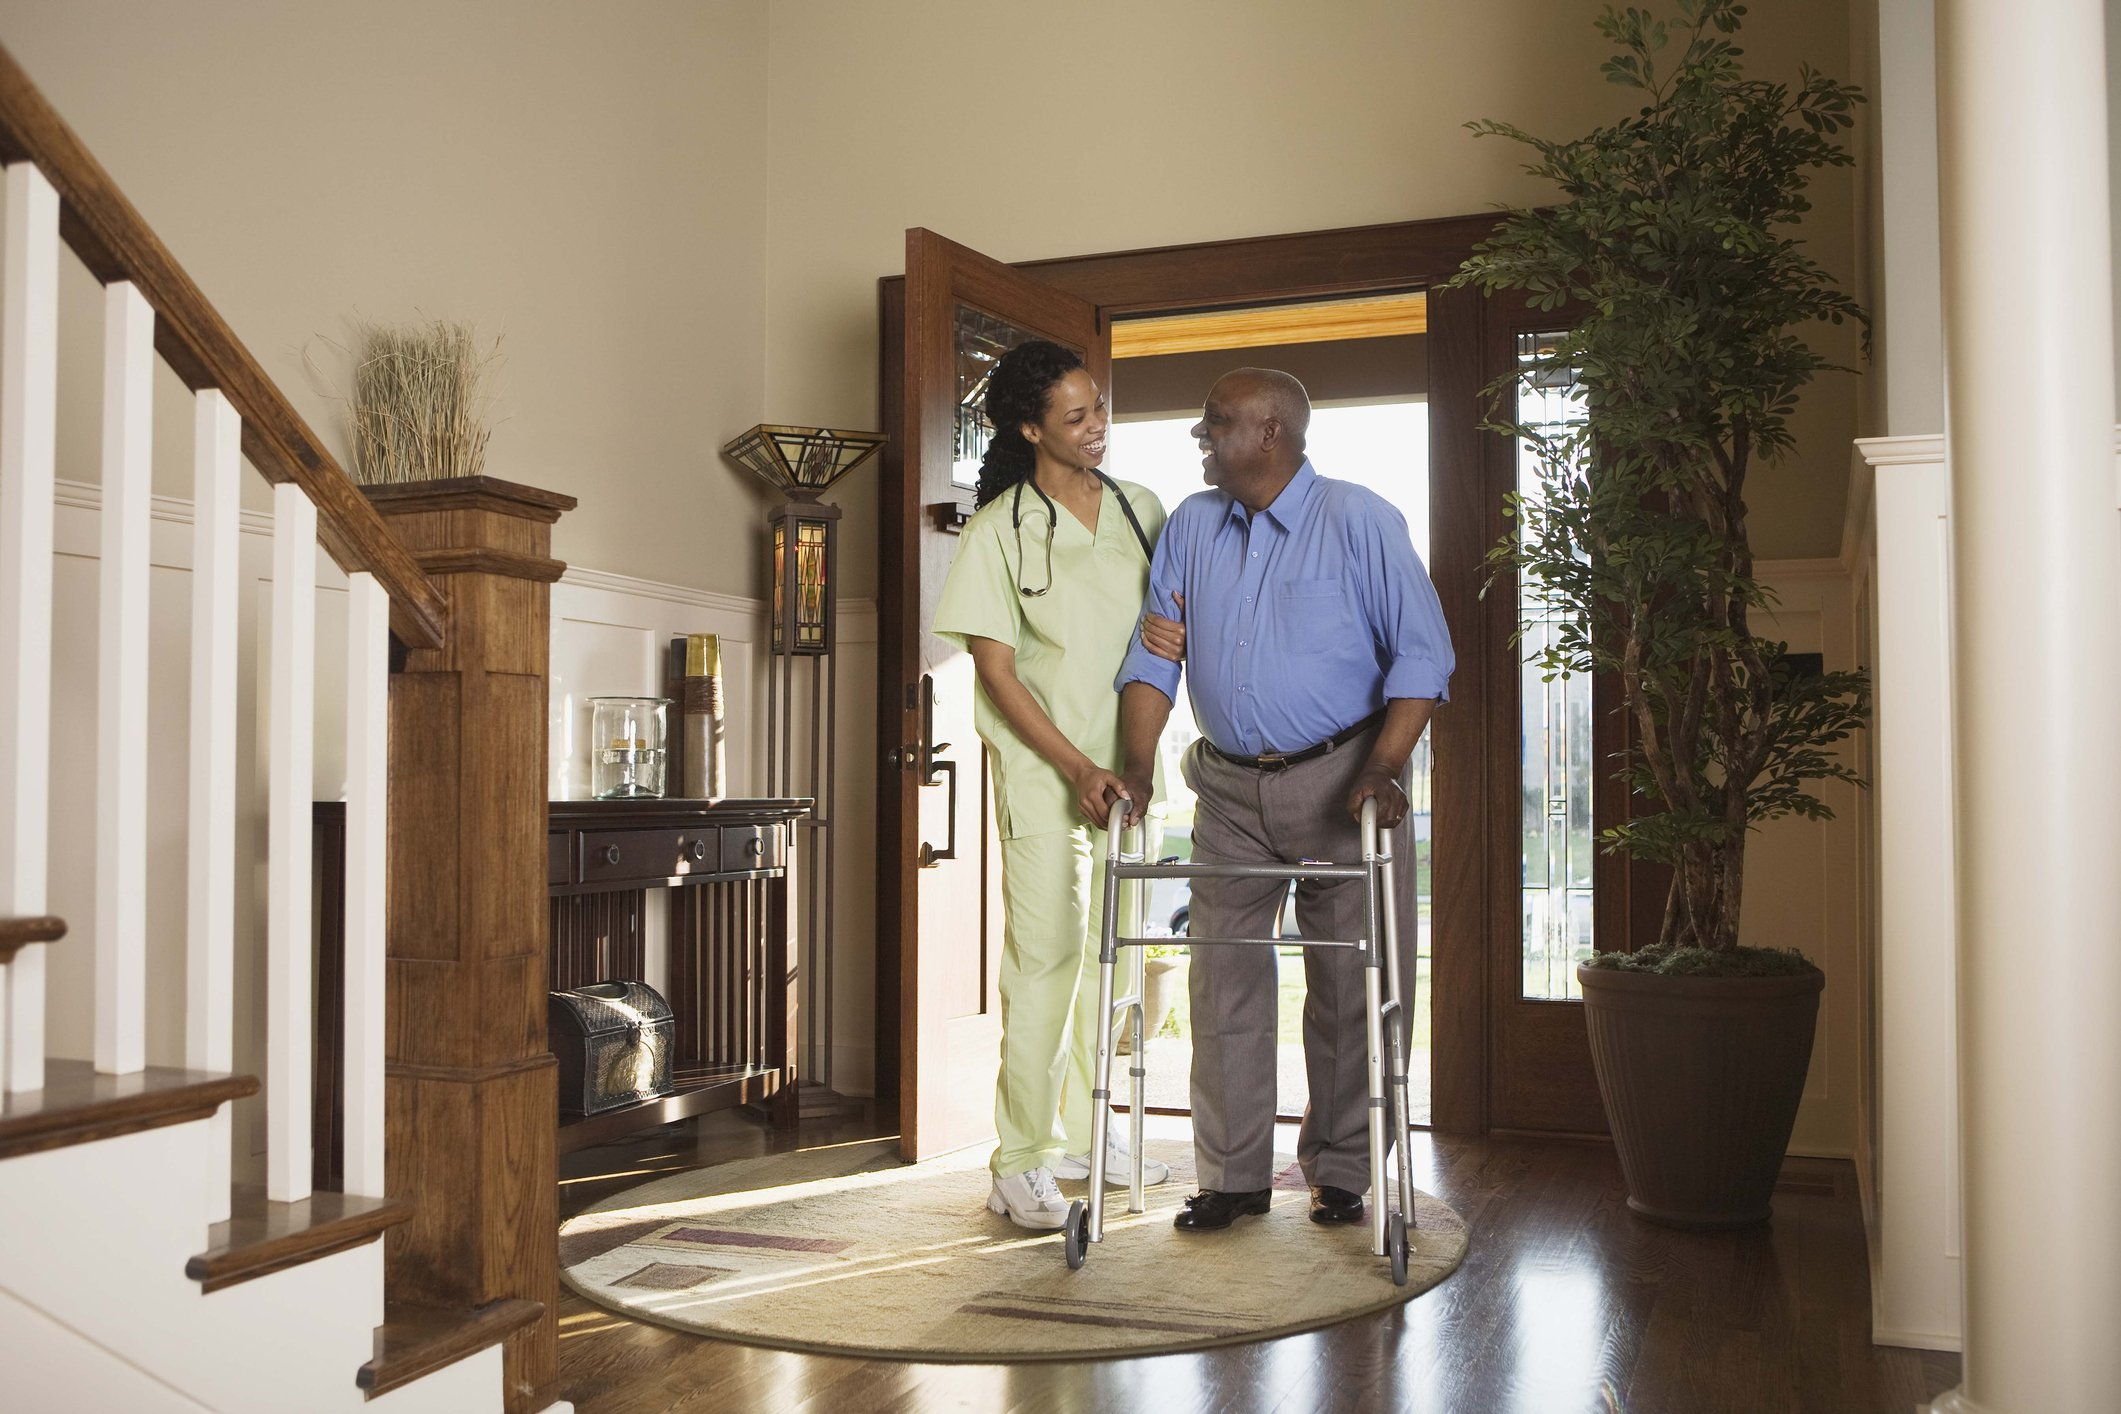 Stryker and DePuy hip replacement recalls